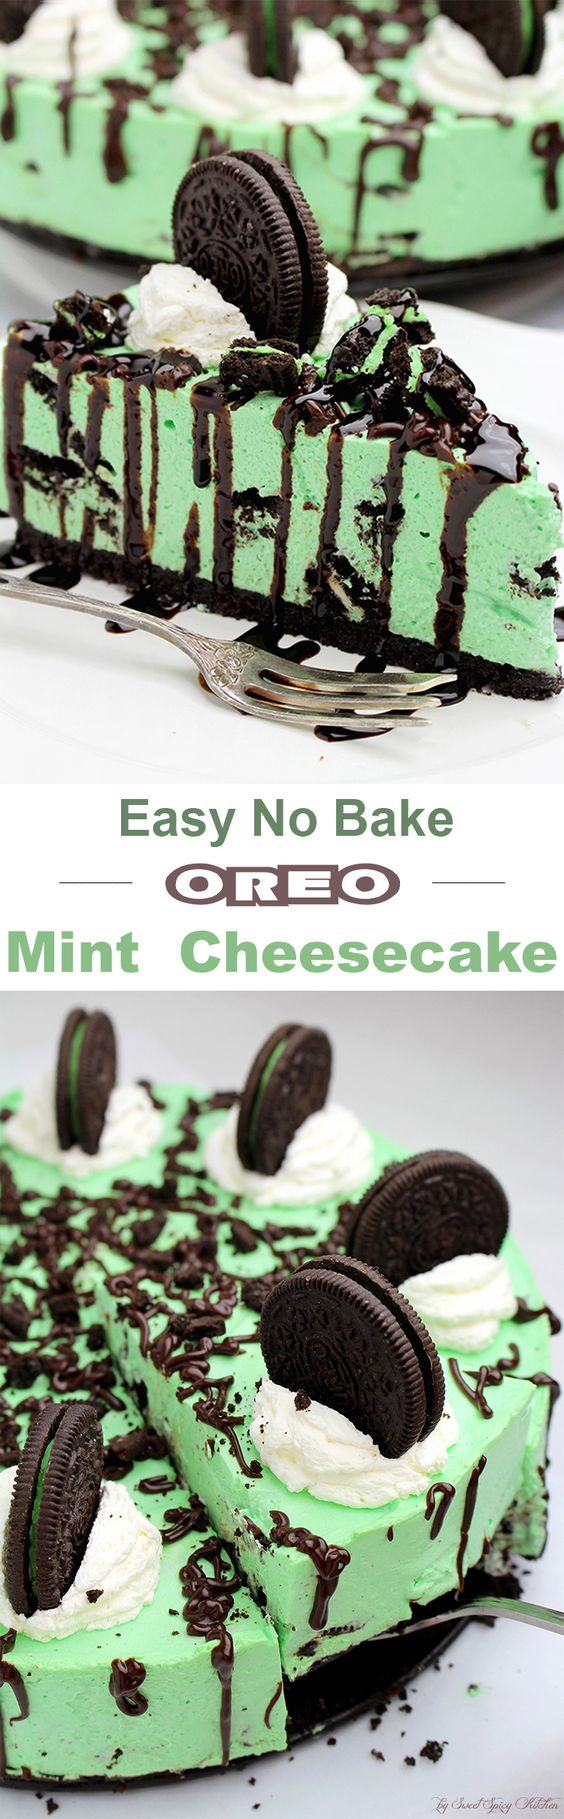 For all Oreo fans I have this fantastic dessert - Easy No Bake Oreo Mint Cheesecake - perfect for special occasions or holidays, like St. Patrick's Day ♥: